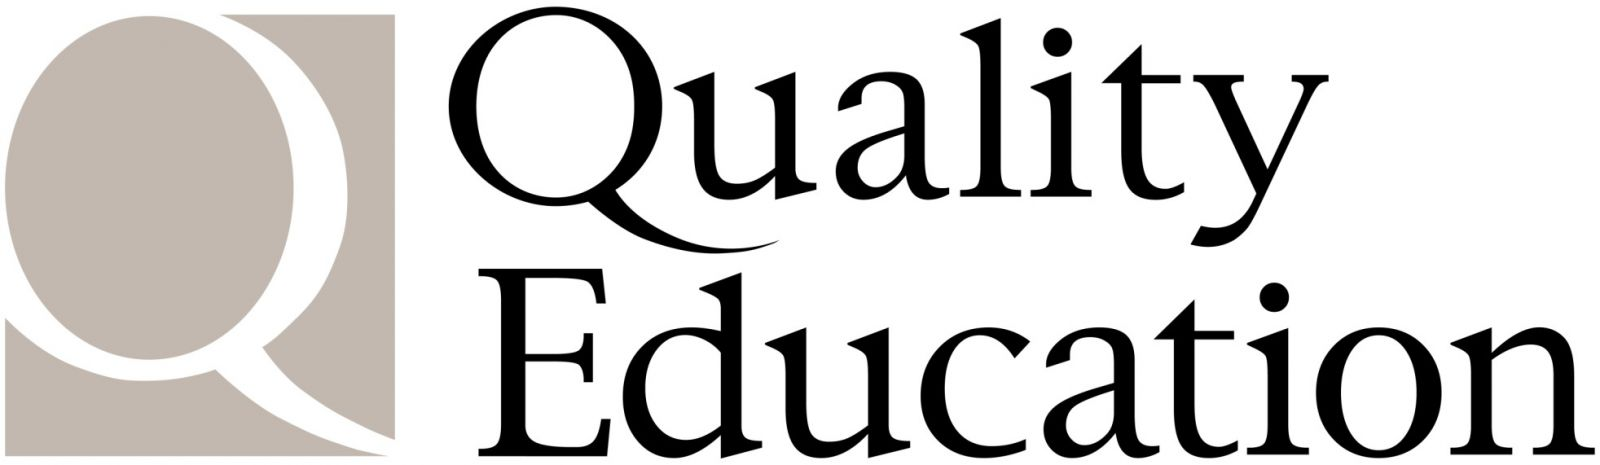 Member of Quality Education